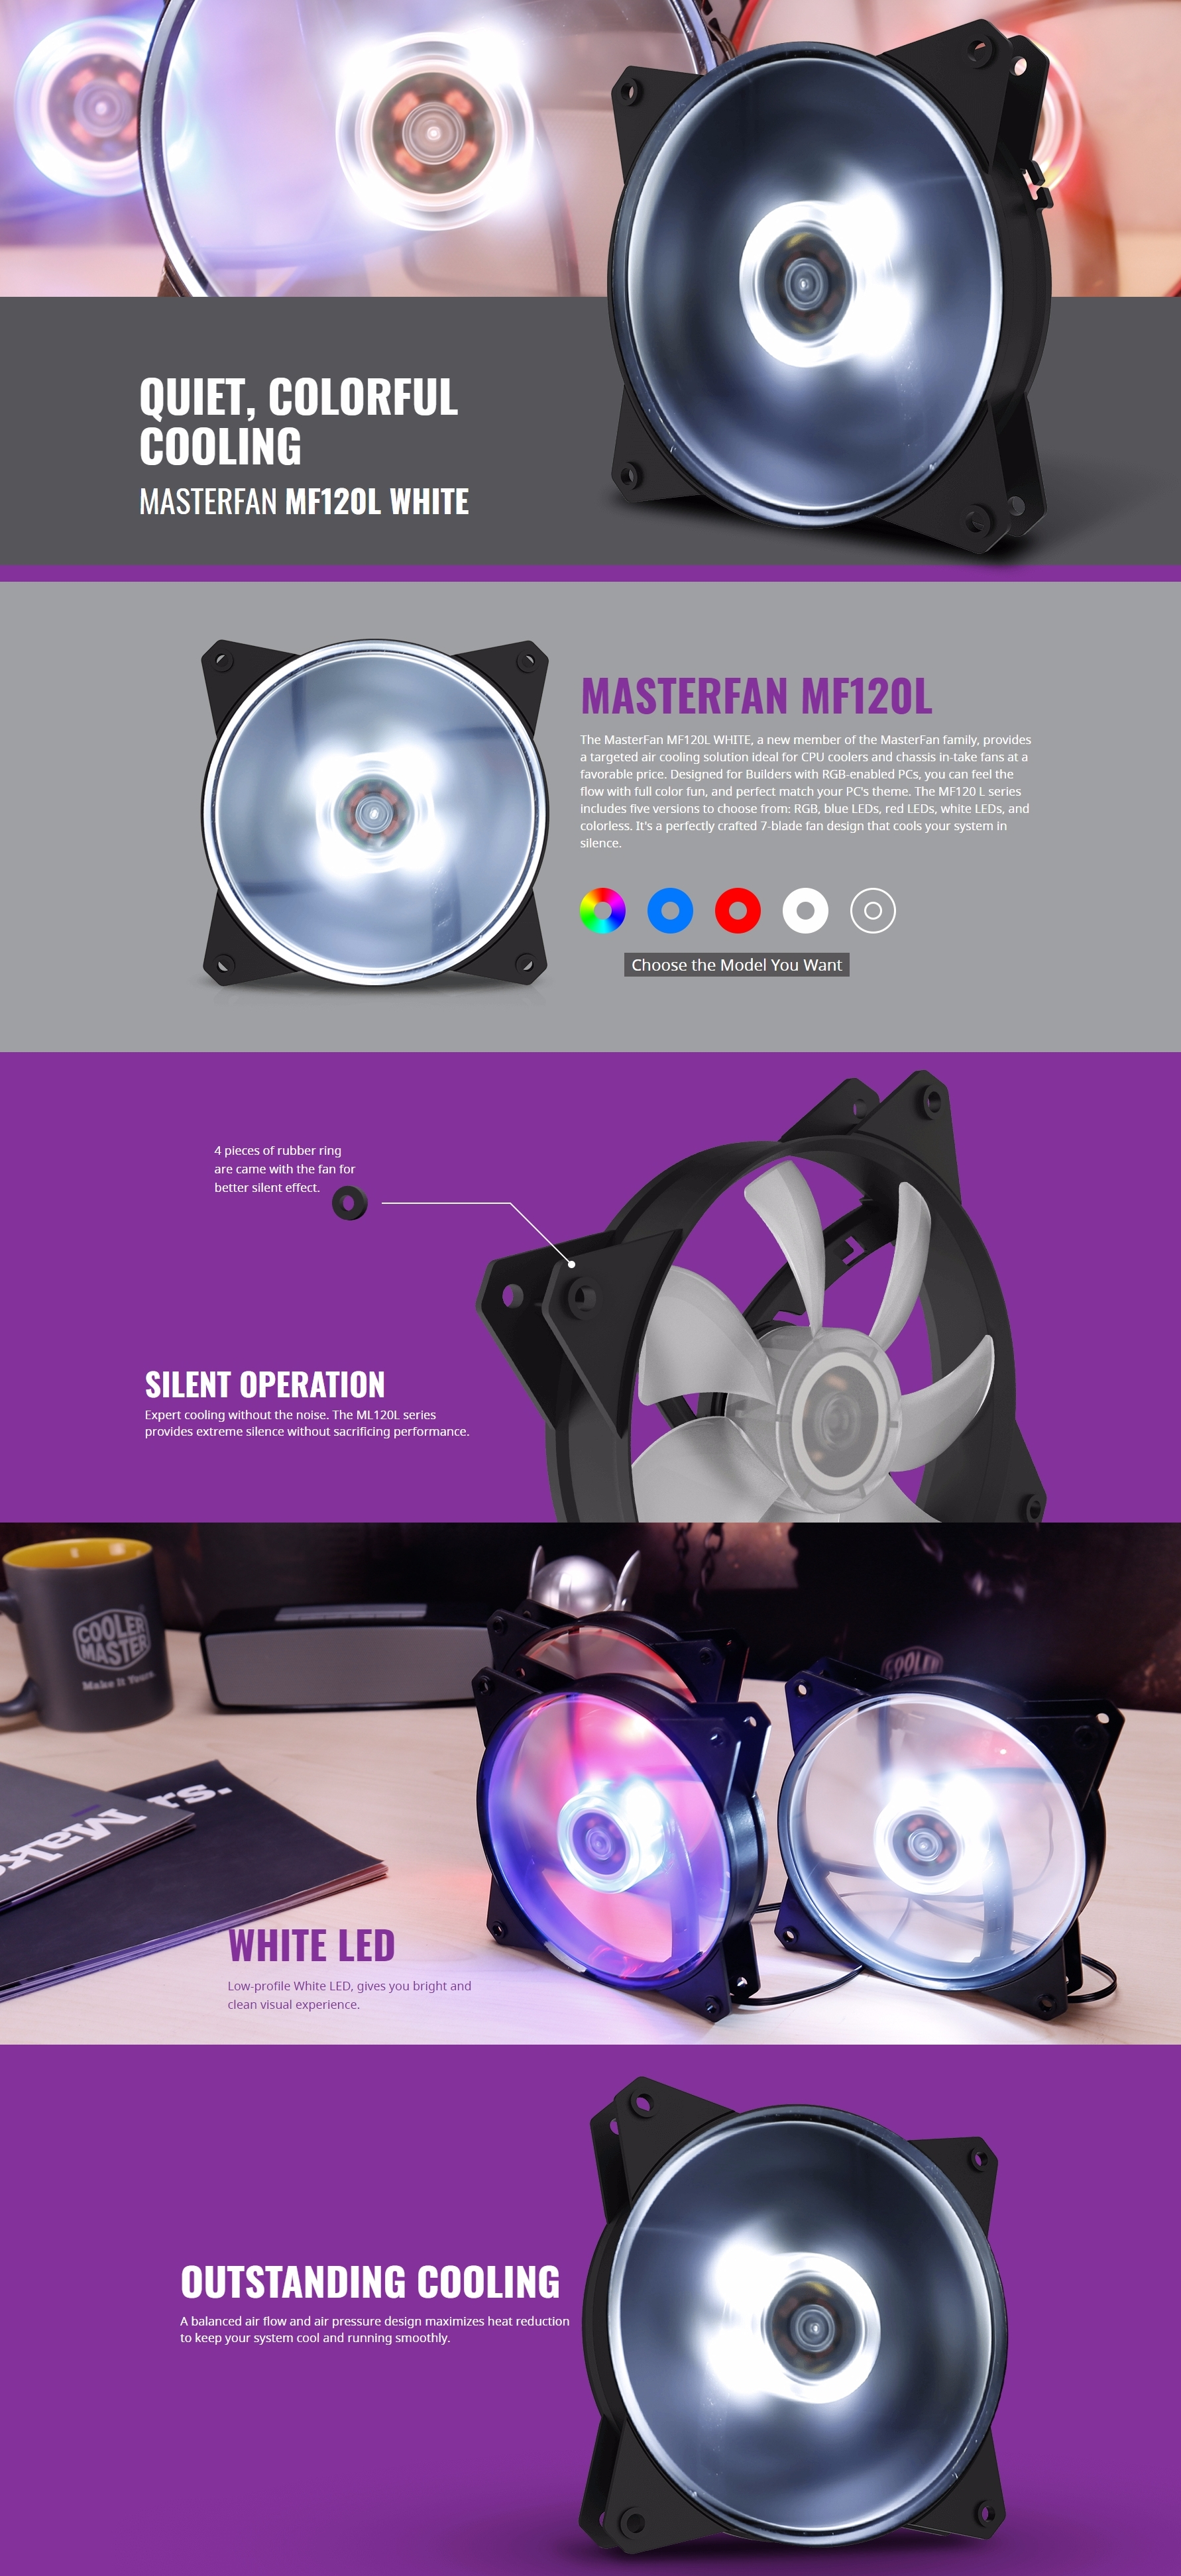 A large marketing image providing additional information about the product Cooler Master MasterFan Lite MF120L 120mm White LED Fan - Additional alt info not provided